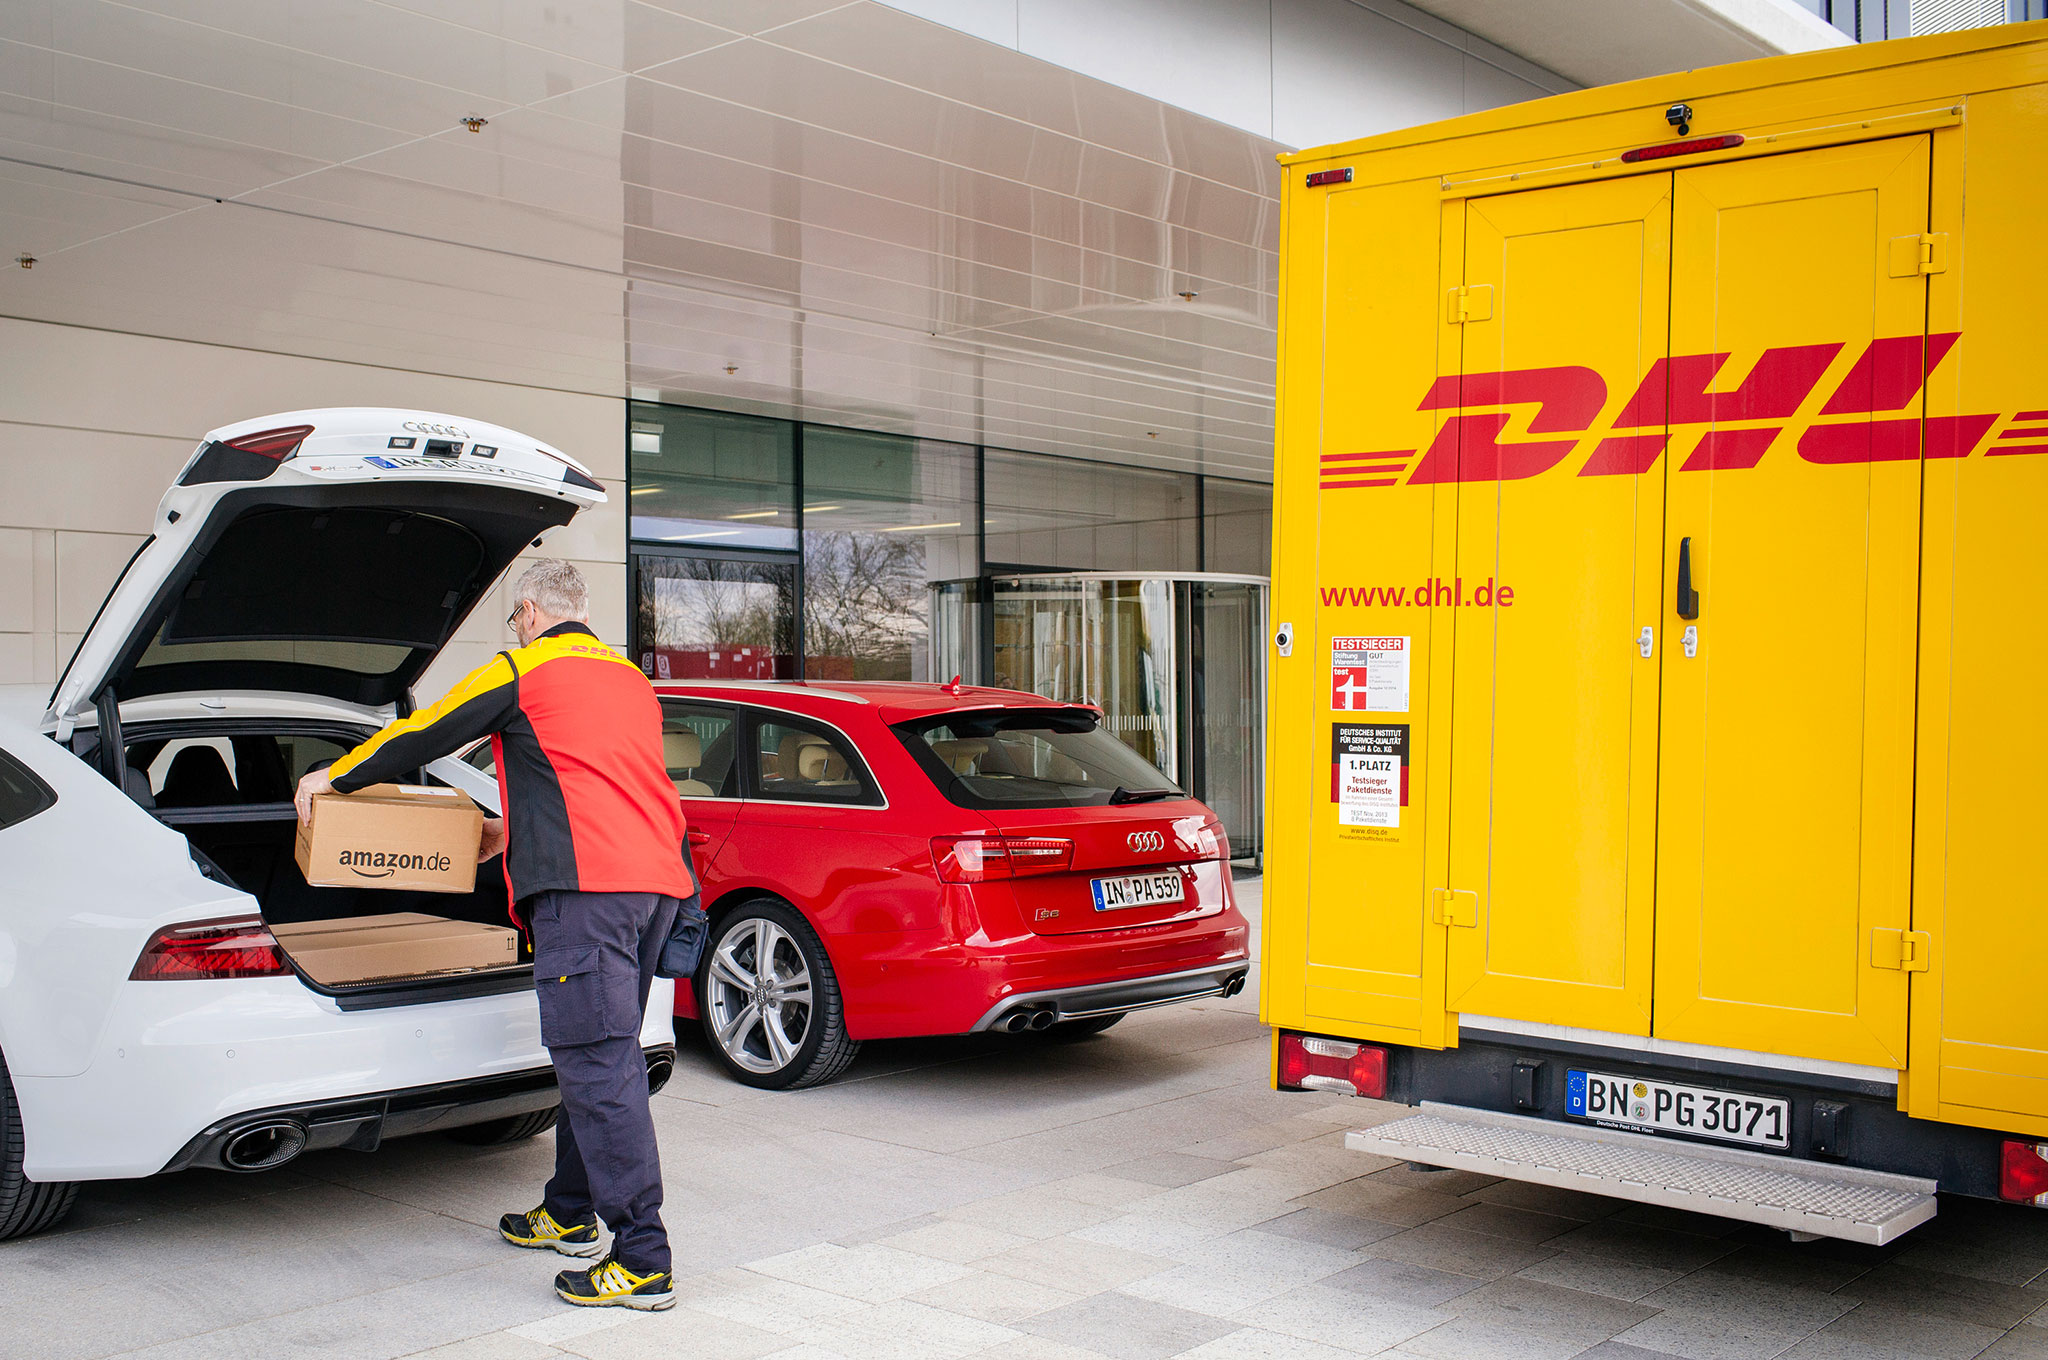 Ship To My Car Dhl And Audi Will Deliver Goods To Your Trunk